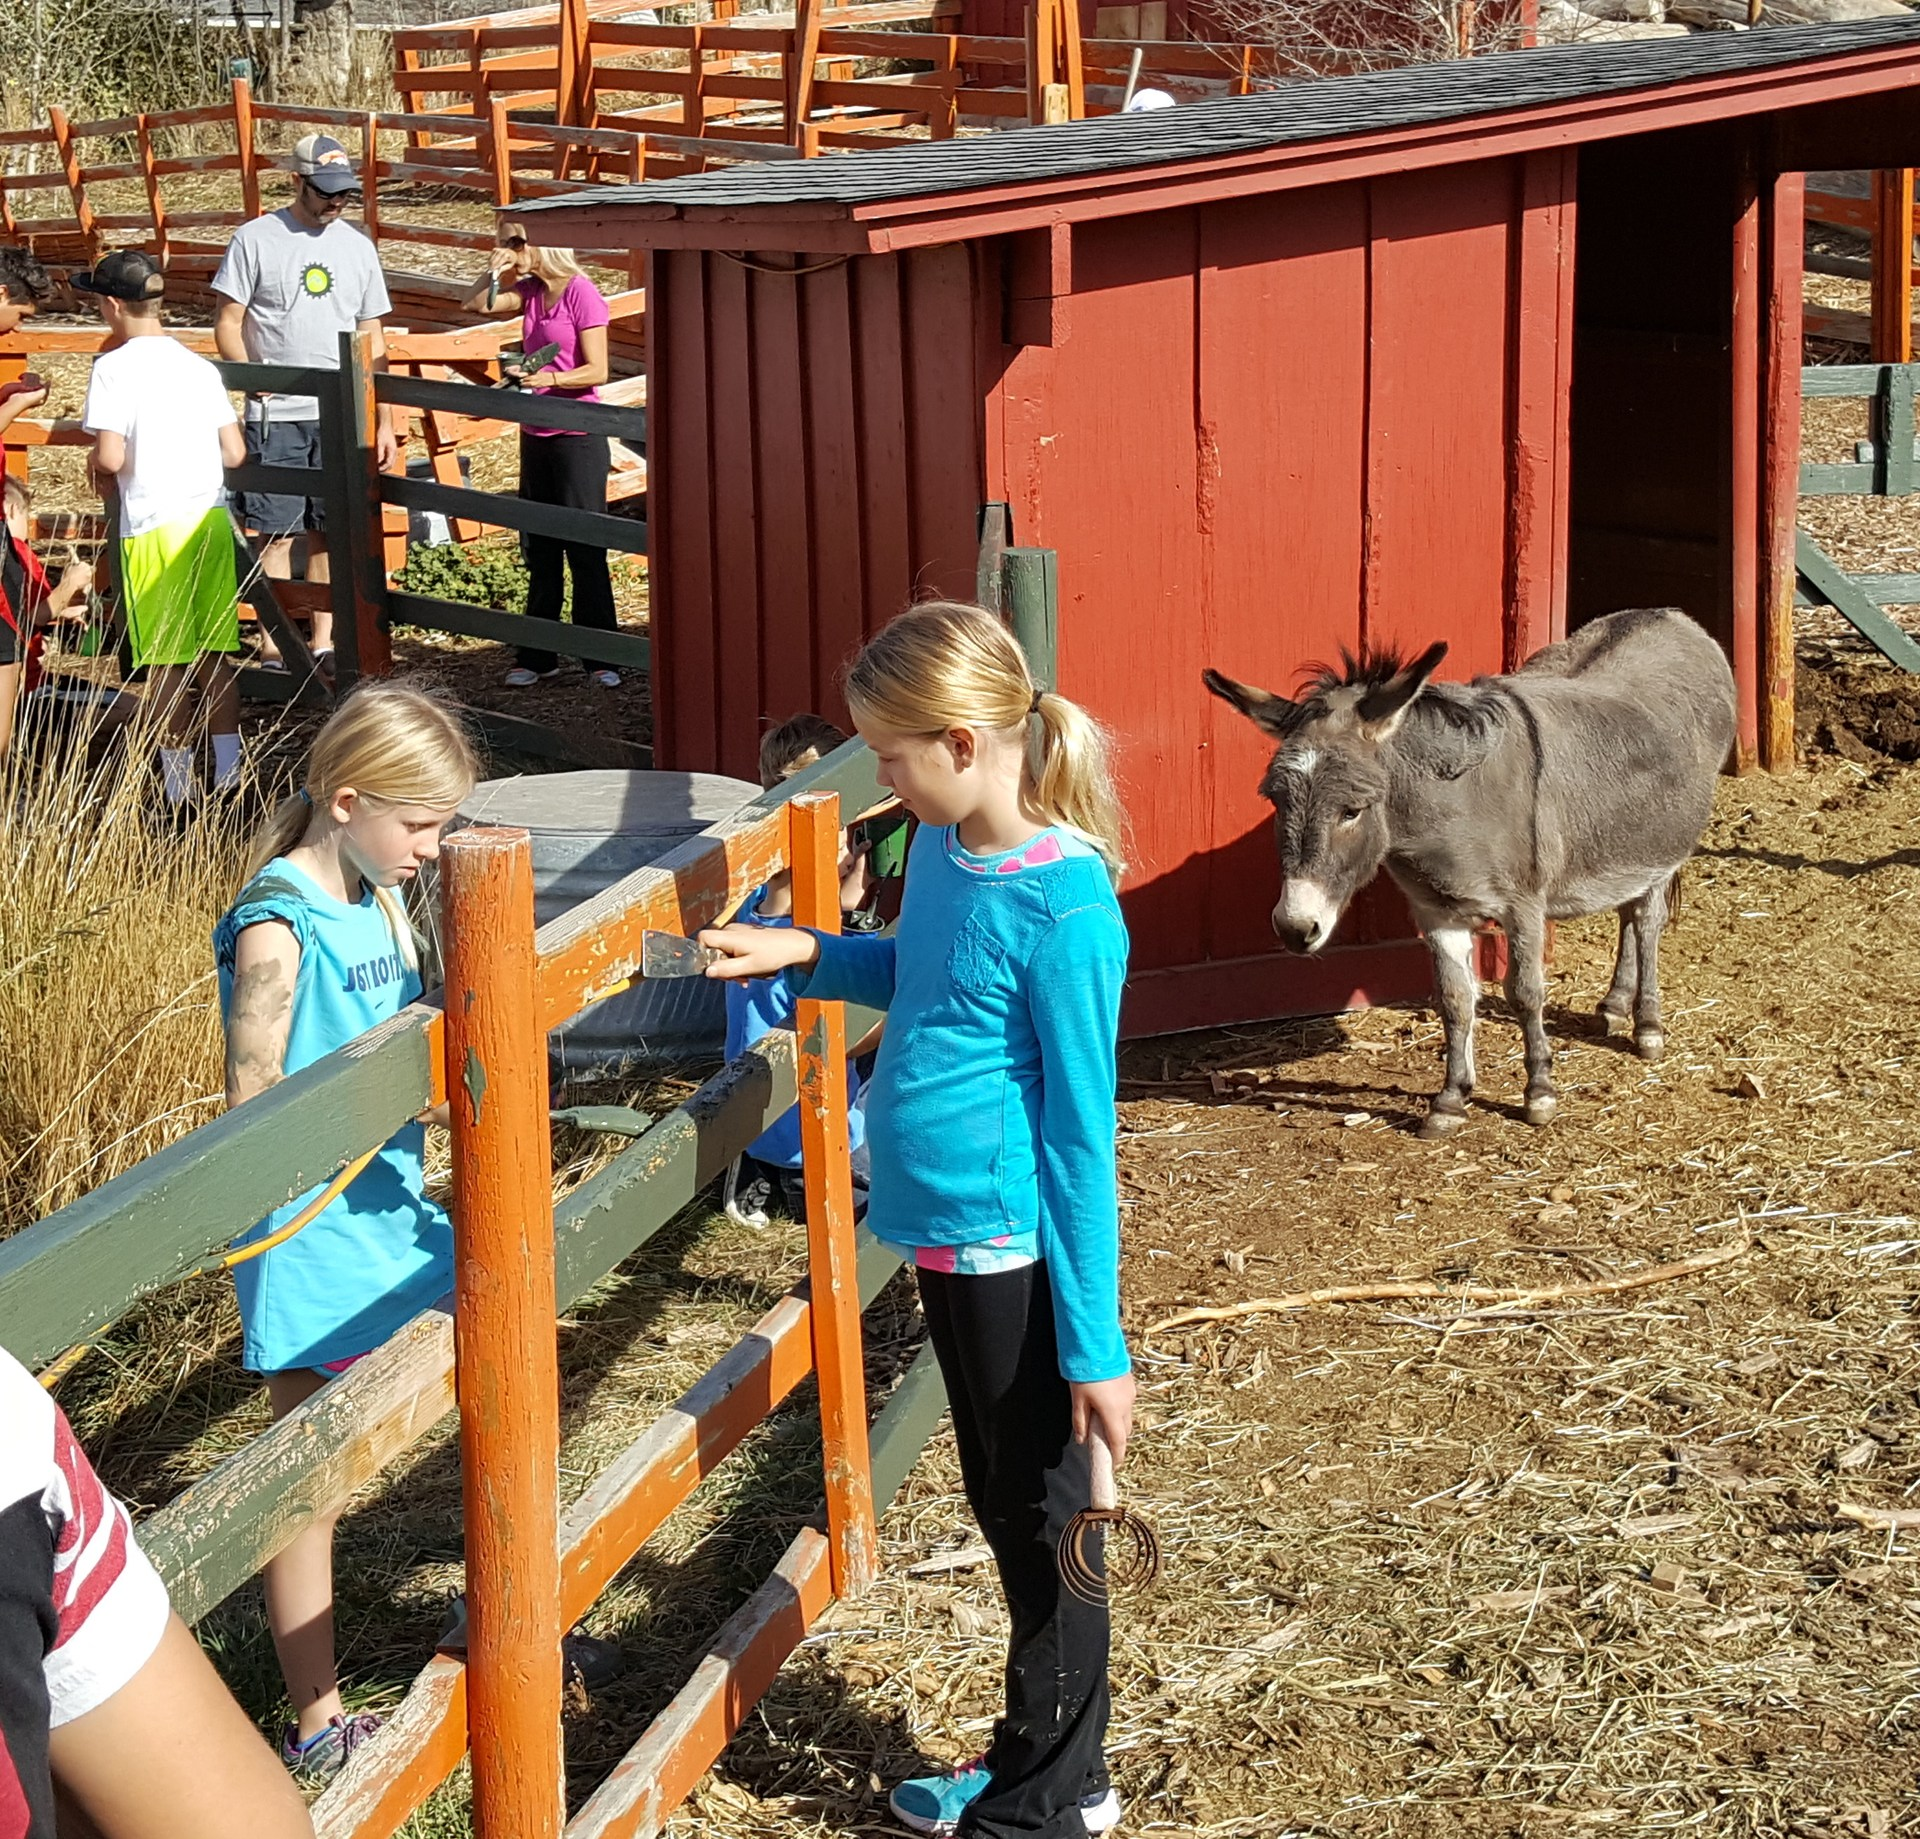 students paint and scrape a fence with a donkey in the background